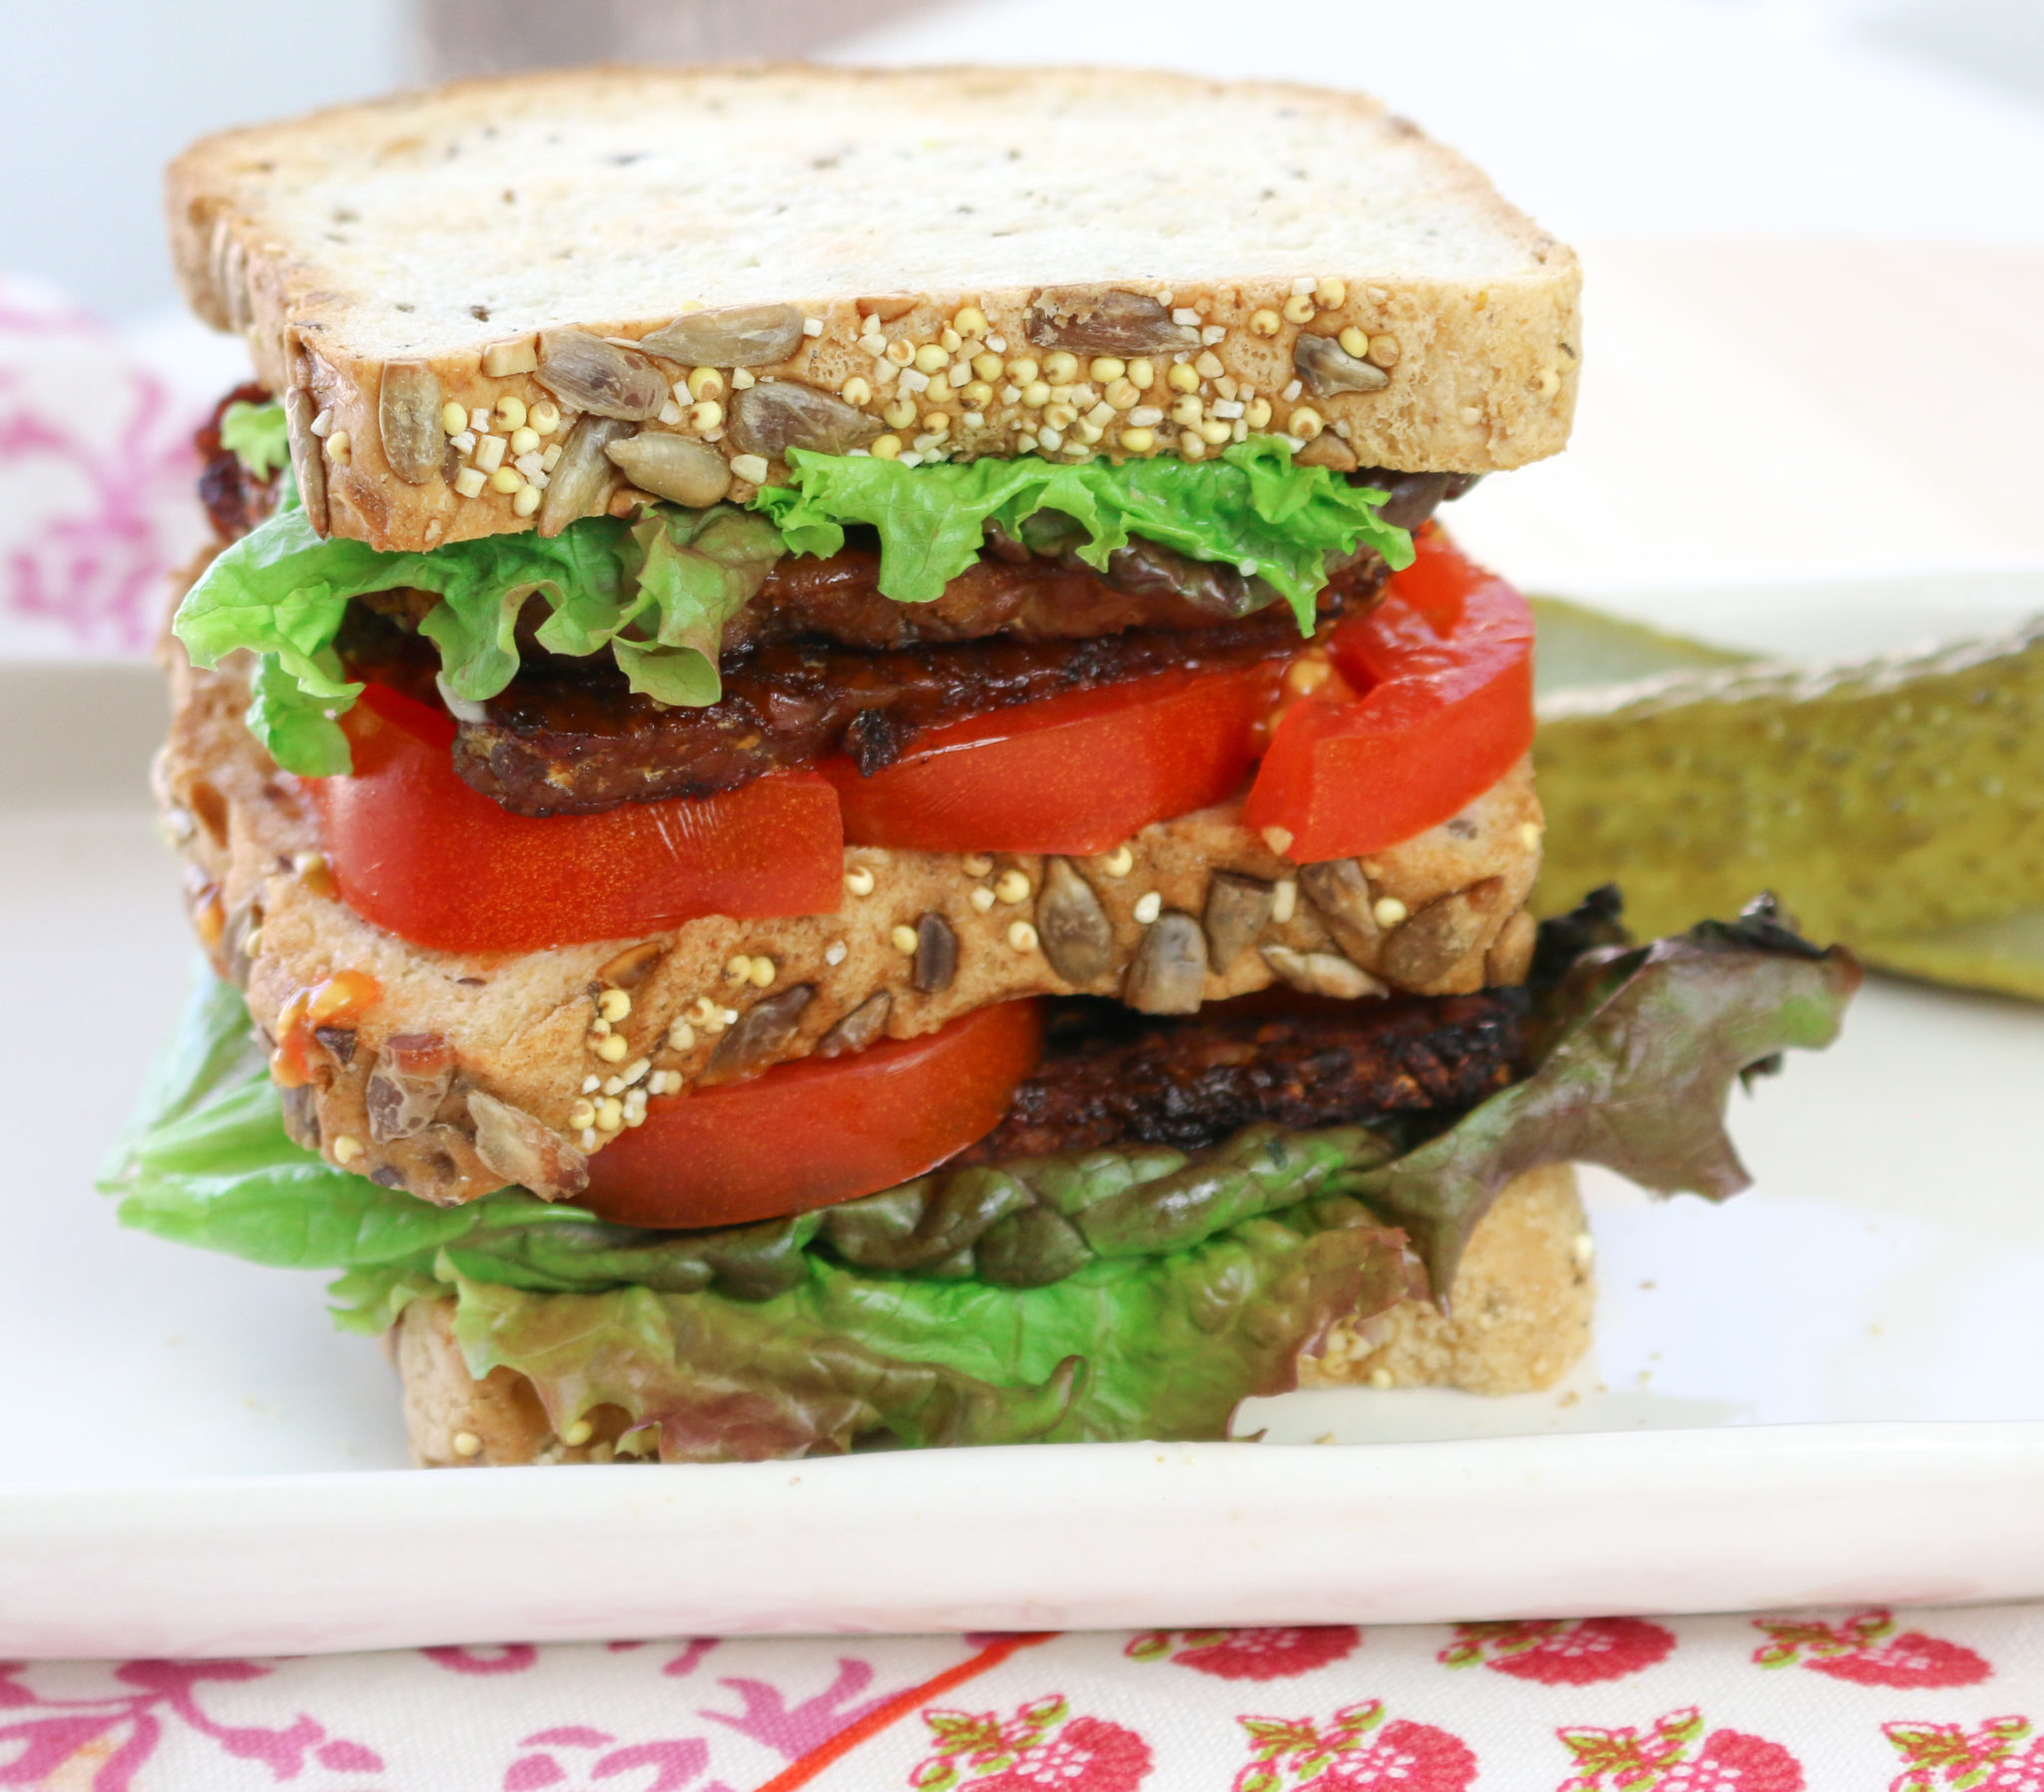 Tempeh bacon is a cinch to make, bold flavors, versatile, fun to eat, breakfast, lunch, dinner or a delicious snack. www.veganglutenfreelife.com/tempeh-bacon/